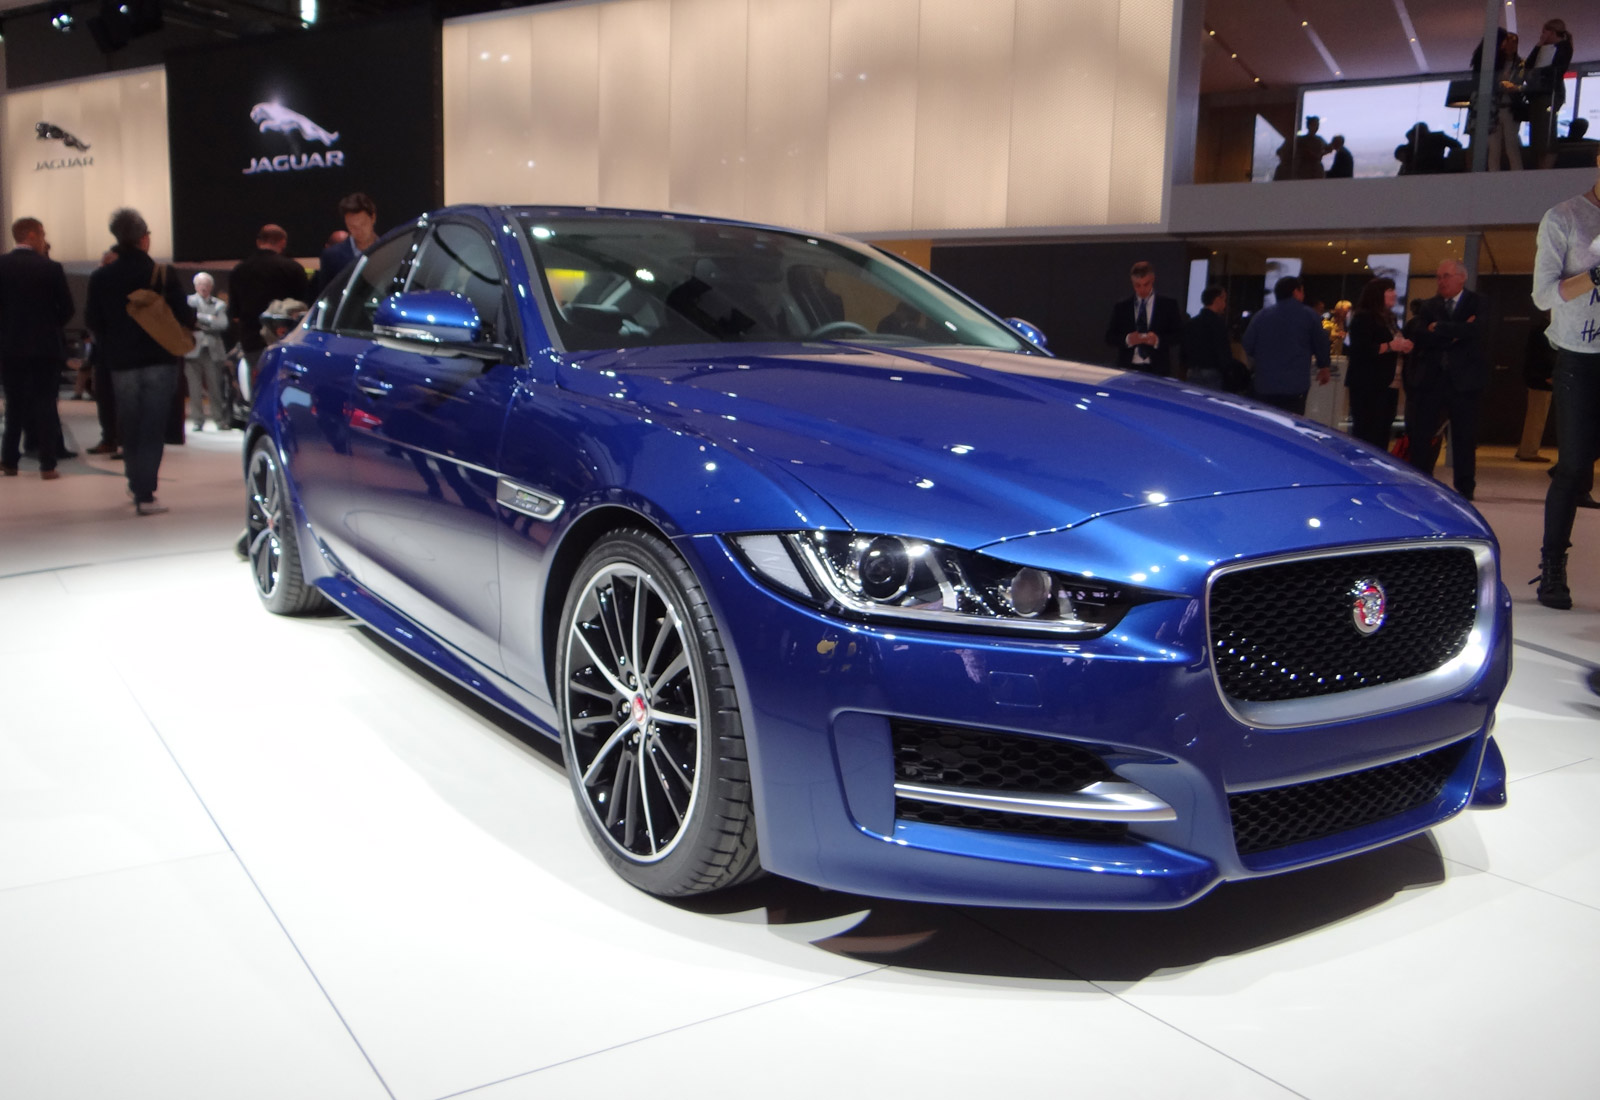 Royal Royce Car Hd Wallpaper Jaguar Planning Both Xe R And Xe Svr Performance Models